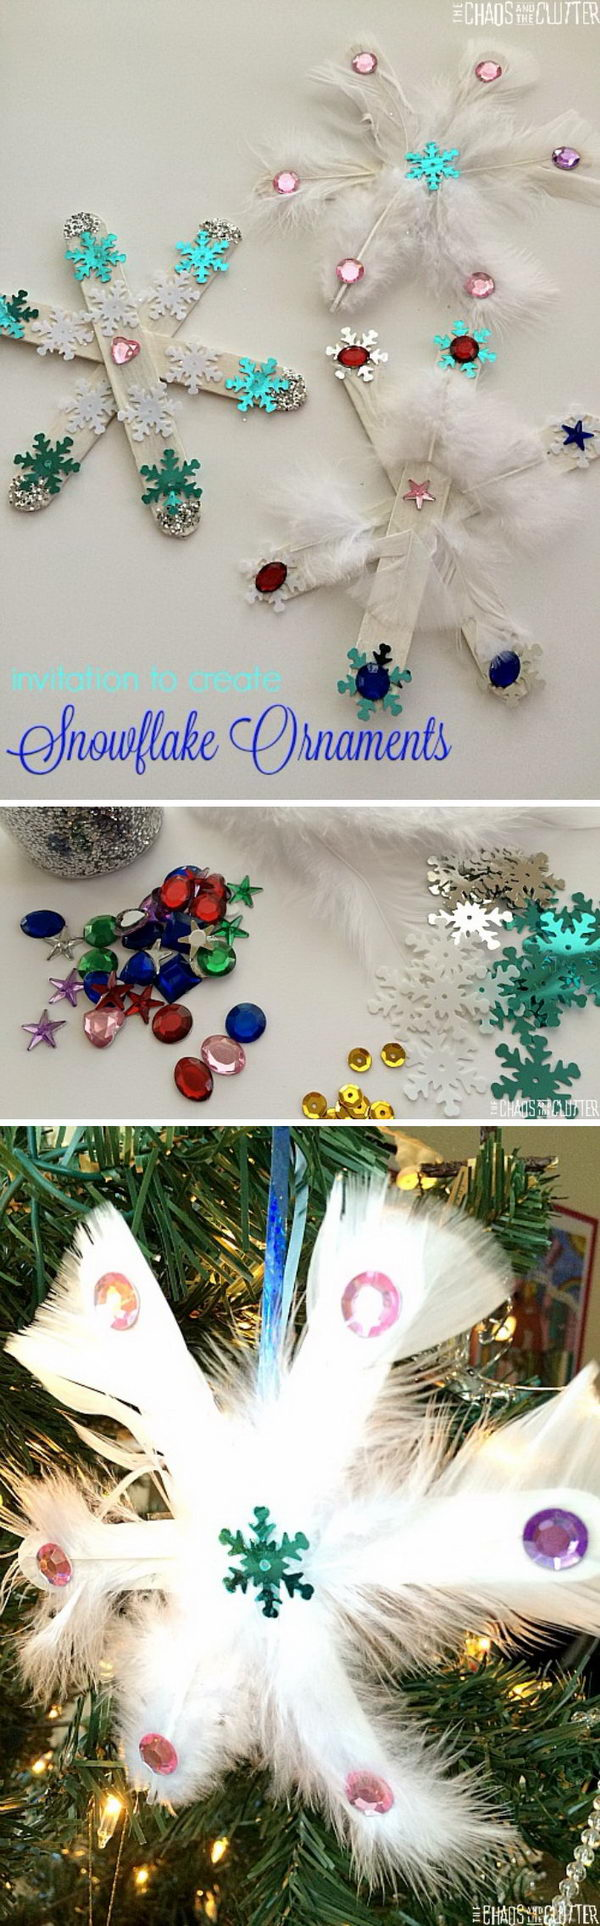 Use Popsicle Sticks to Create Snowflakes.